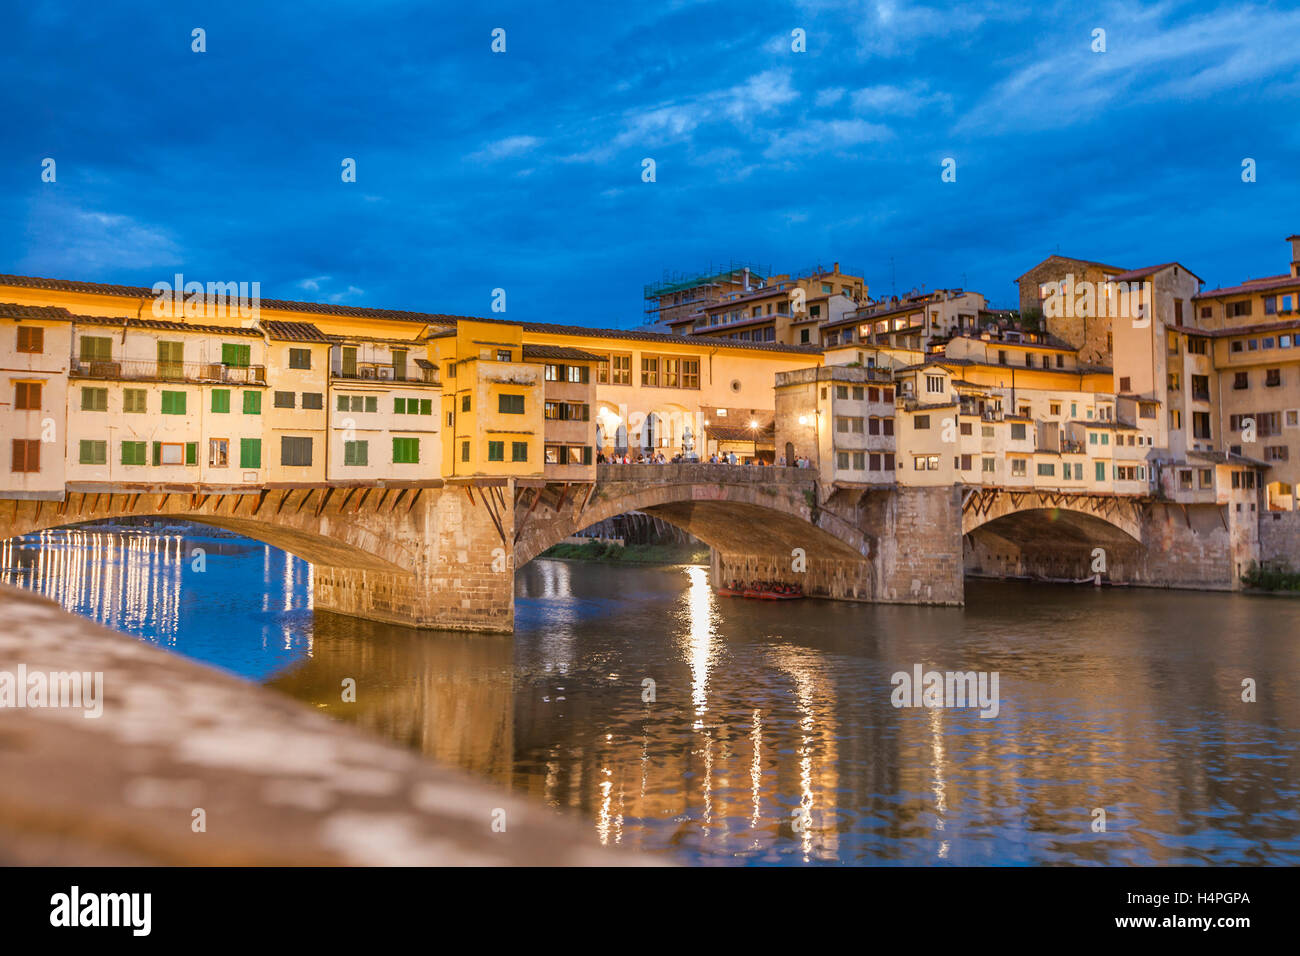 View at Bridge Ponte Vecchio in Florence, Italy by night - Stock Image